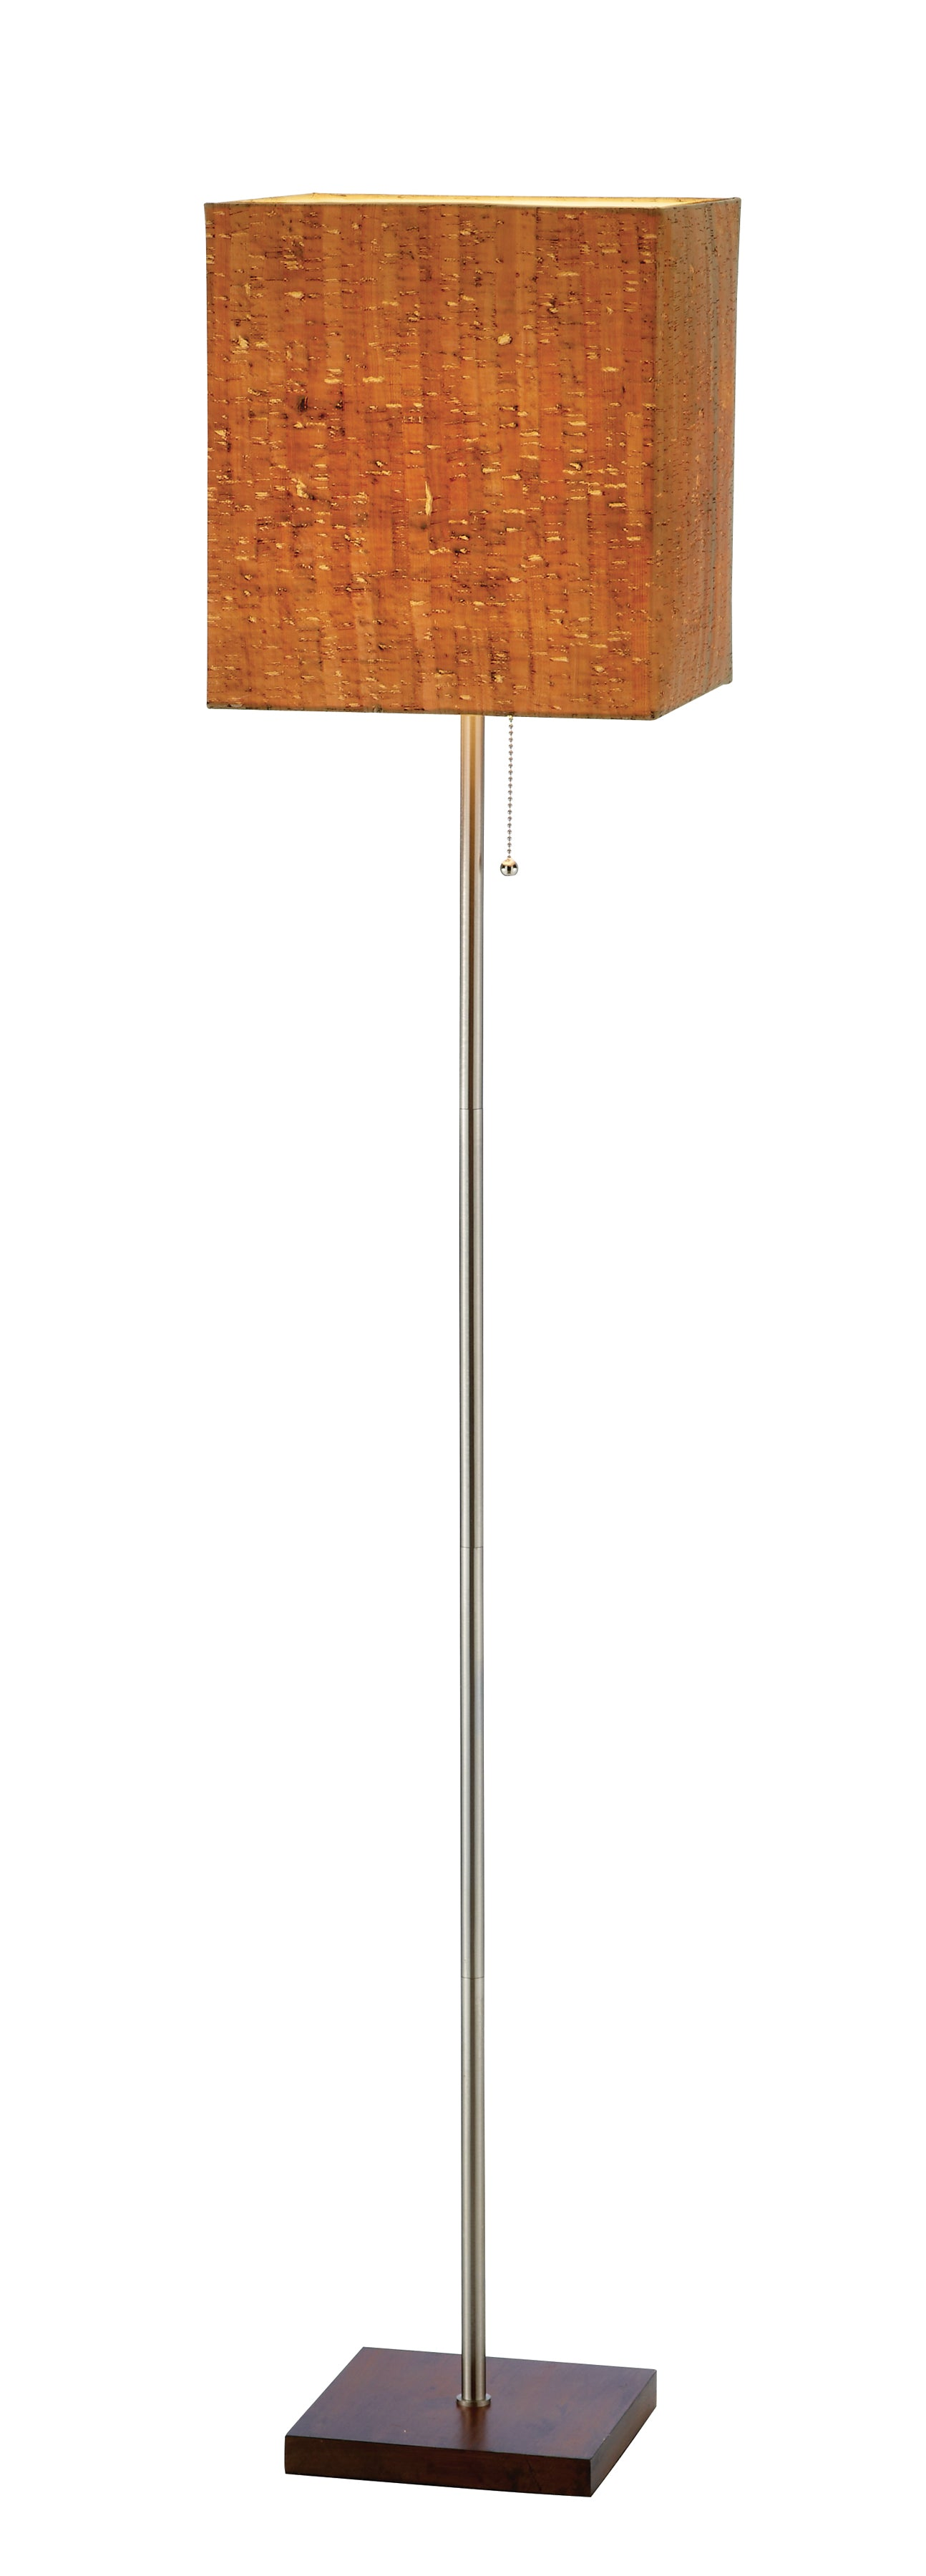 "11"" X 11"" X 56"" Walnut Wood/Metal Floor Lamp"